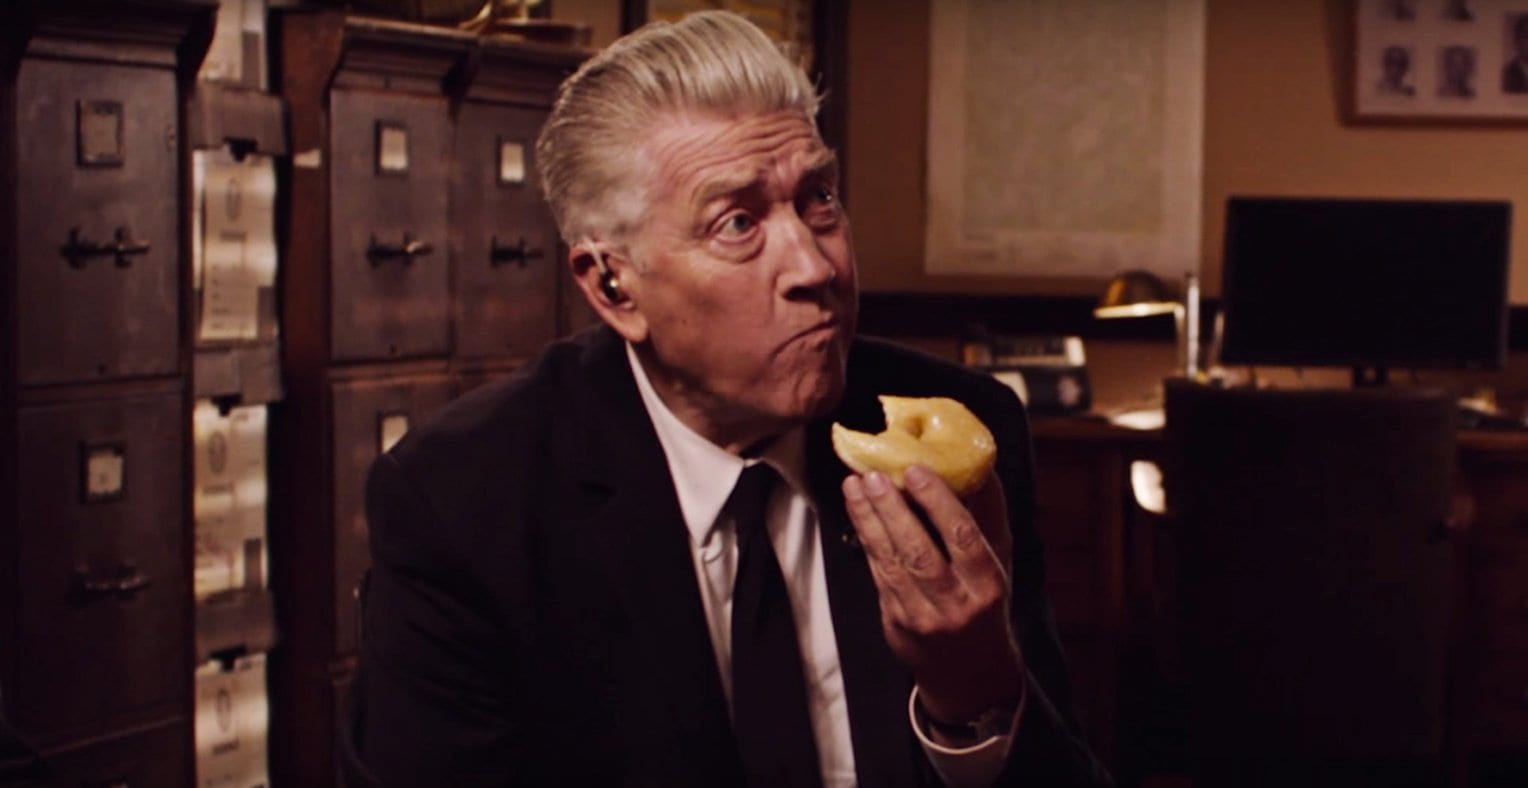 David Lynch eats a donut